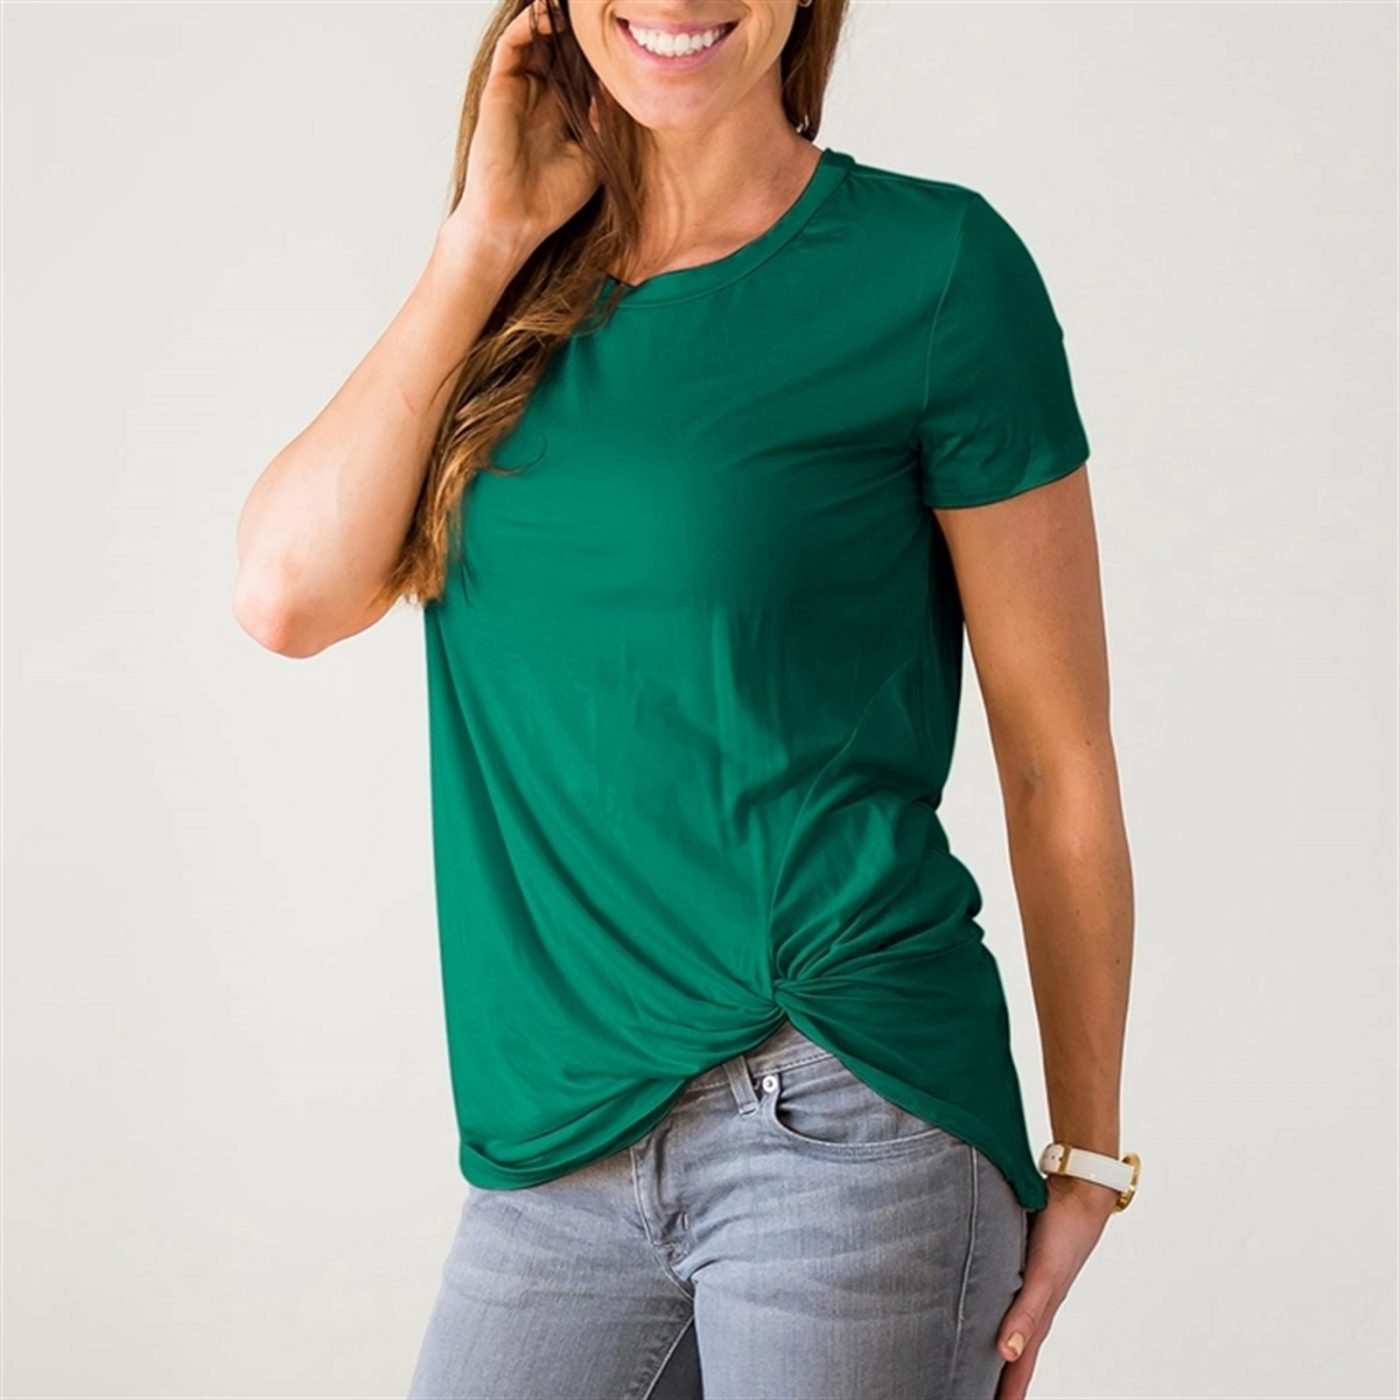 Was $39.99 - Now $19.99 - Twist Front Top | Free Shipping (10/16 to 10/18)